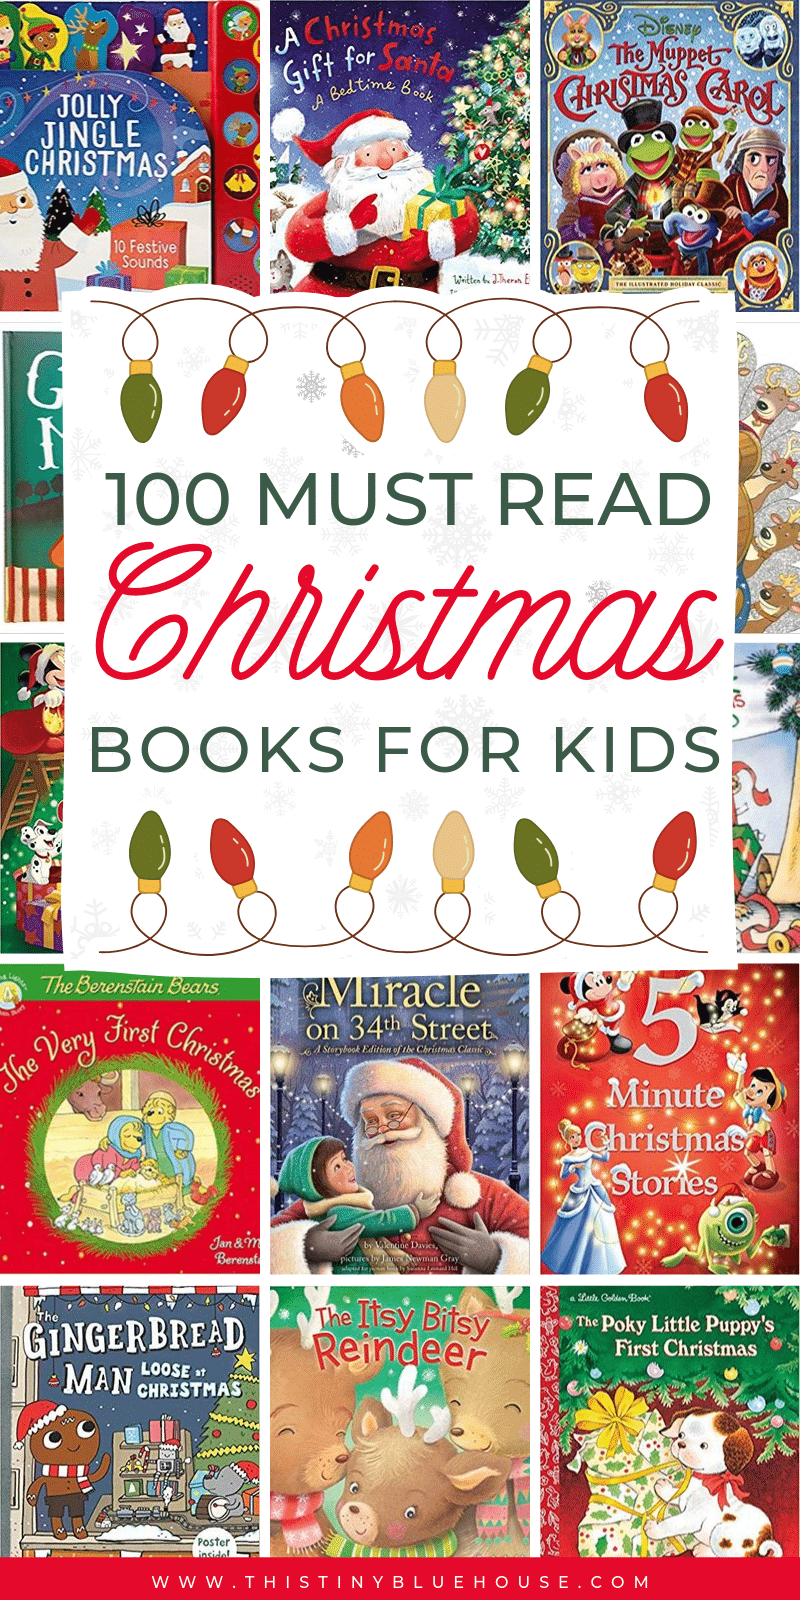 Are you looking to add a few festive books to your kids holiday reading list this year? Here are 100 Best Christmas books for kids of all ages. This ULTIMATE massive list of holiday books is perfect for kids as young as 3! #ChristmasBooks #ChristmasBooksKids #ChristmasBooksChildrens #ChristmasBooksForToddlers #ChristmasBooksPreschool #HolidayBooksKids #ChristmasBooksForKids